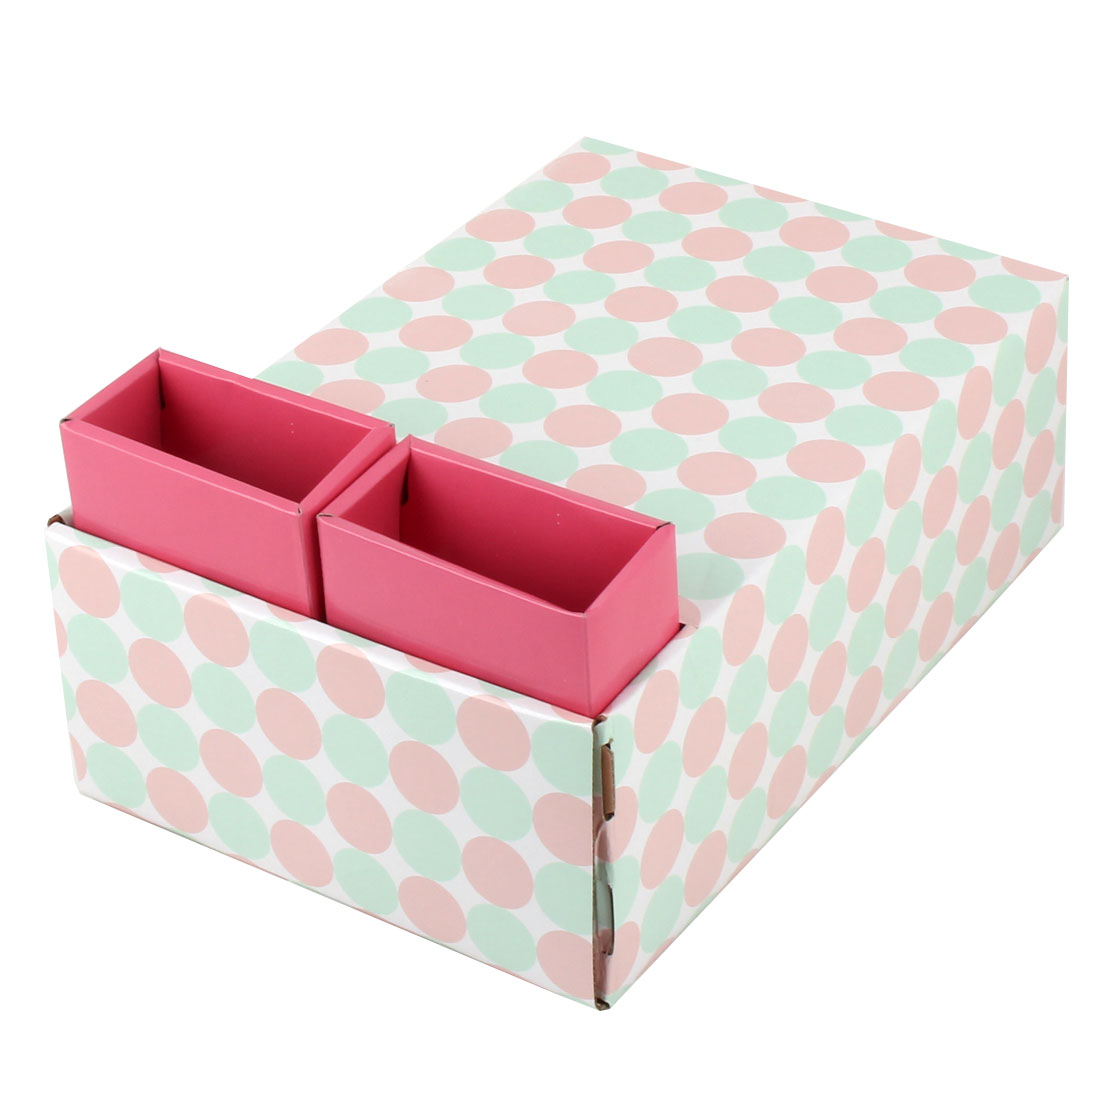 Unique Bargains Home Paper Dot Pattern DIY Foldable Book Holder Container Storage Box Case Red - image 4 de 6